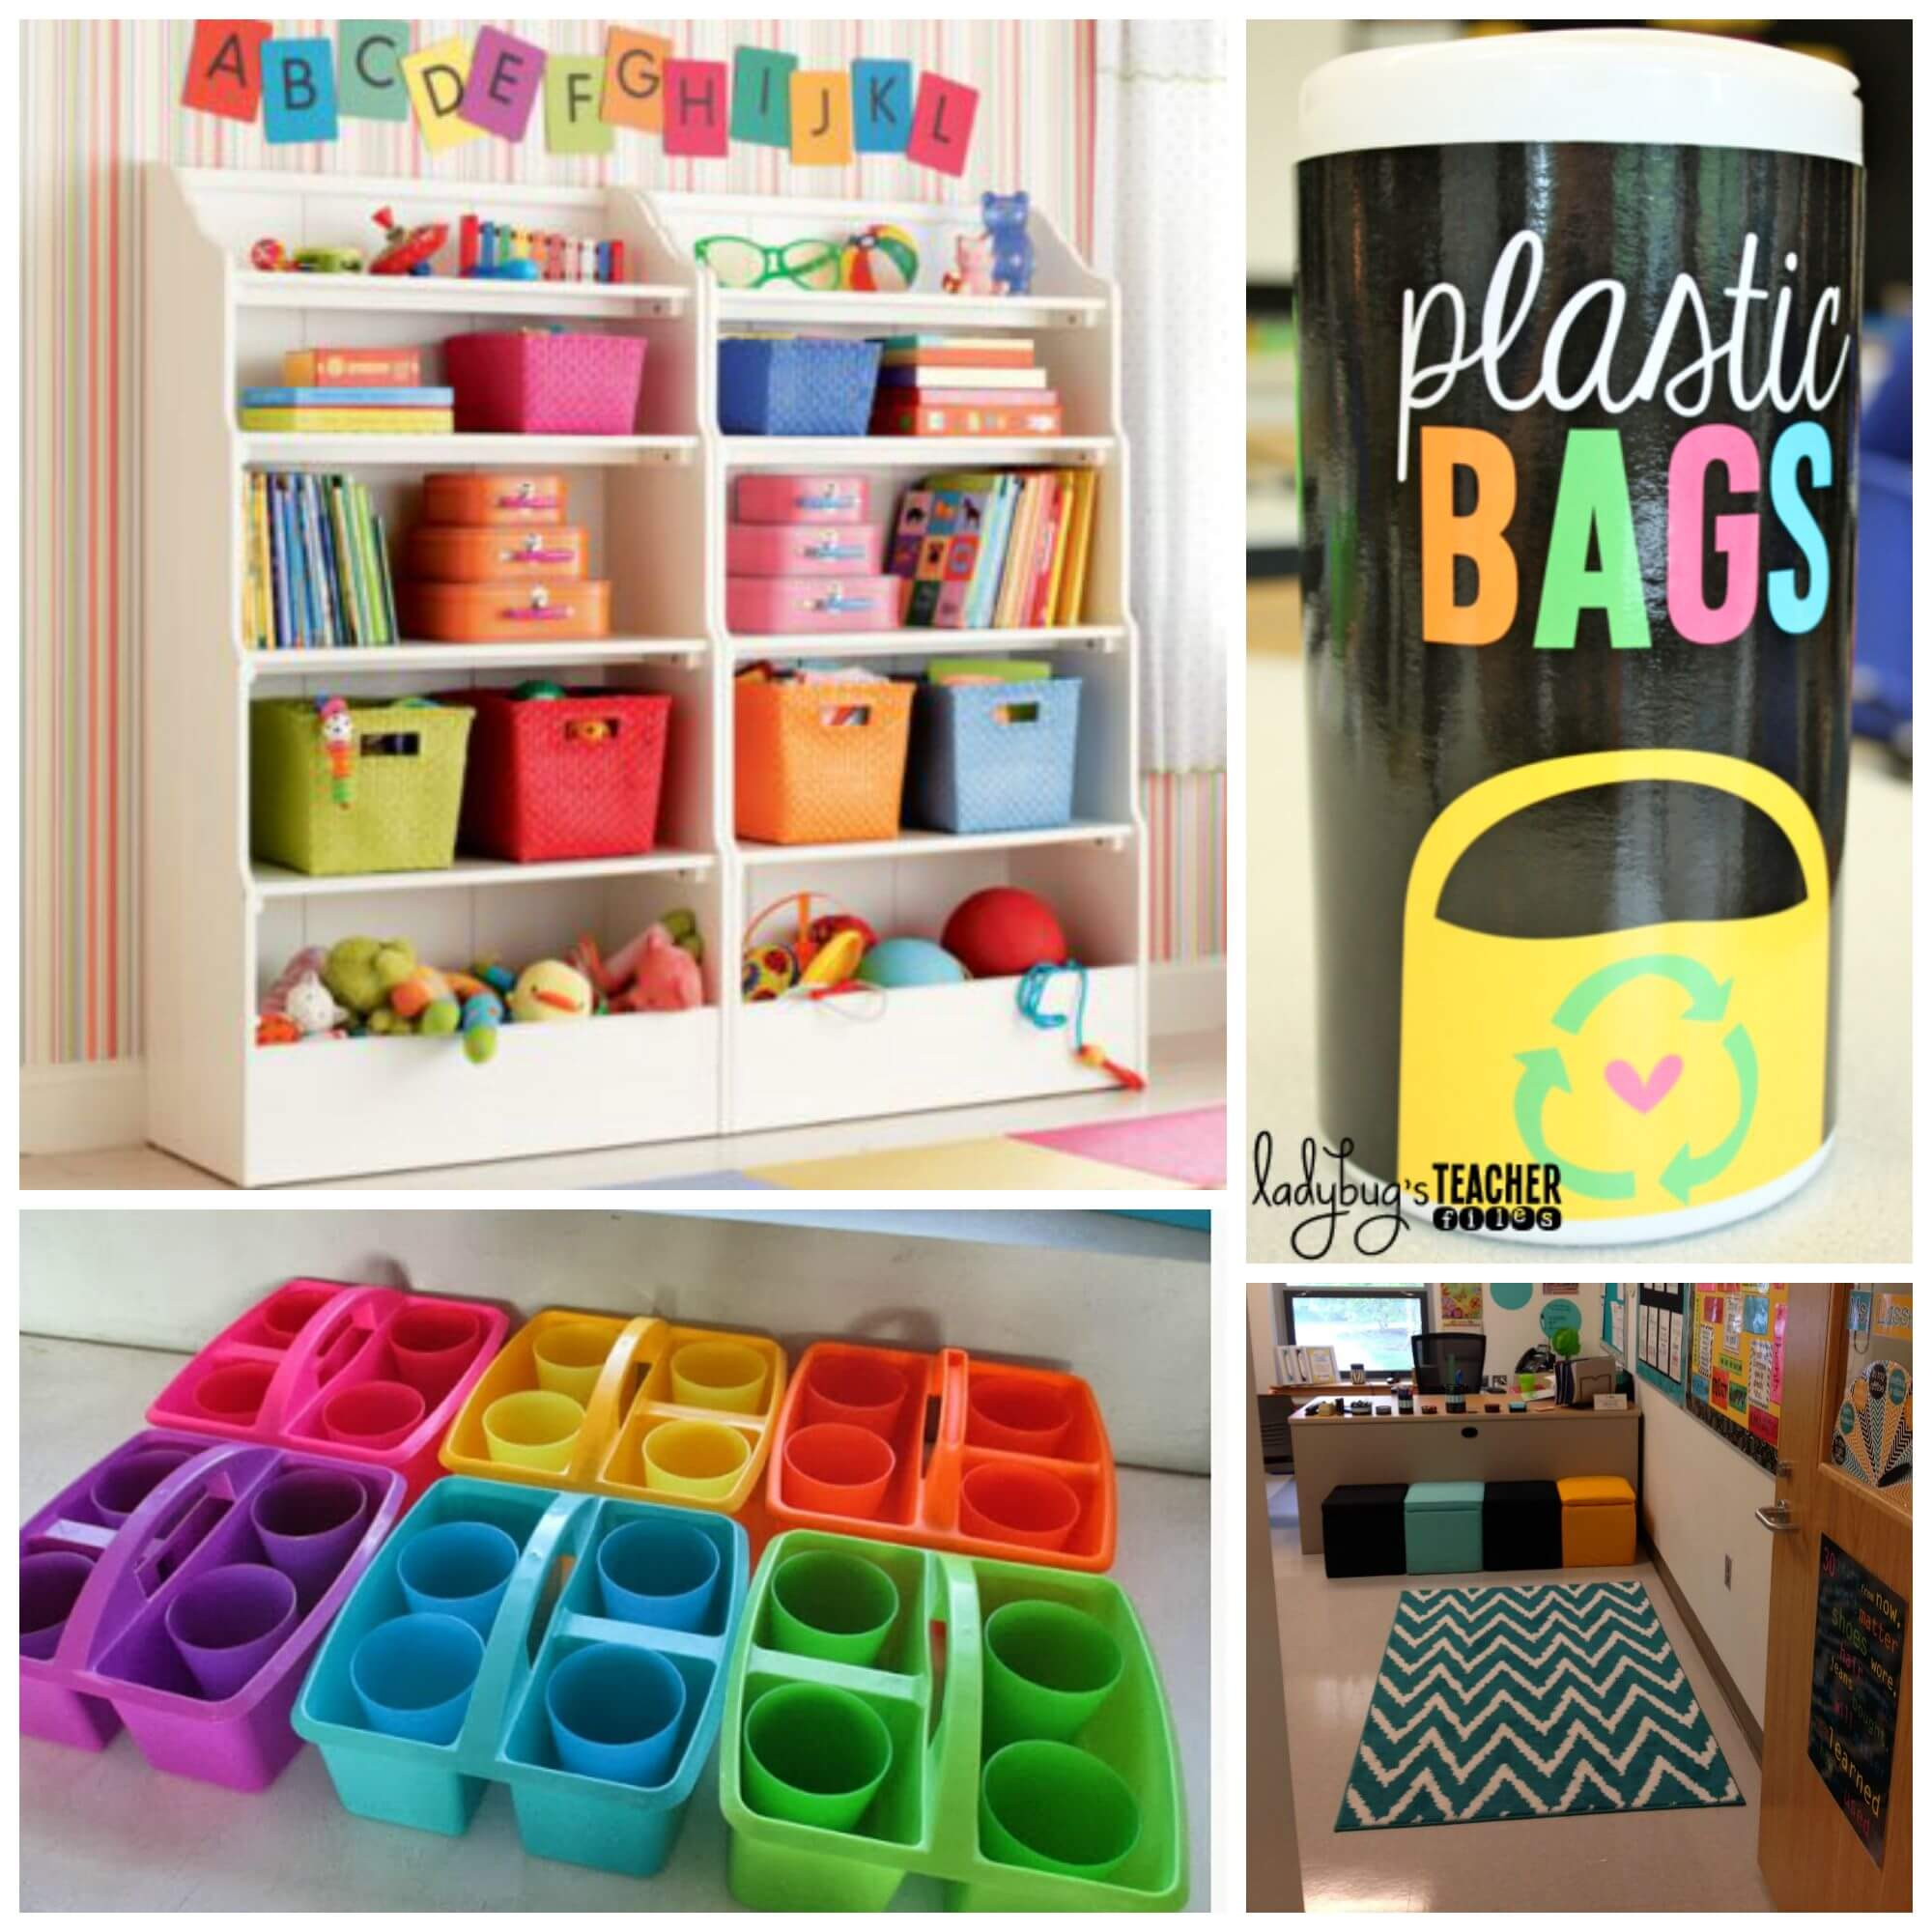 Classroom Windows Decoration Ideas ~ Inspiring classroom decoration ideas playdough to plato